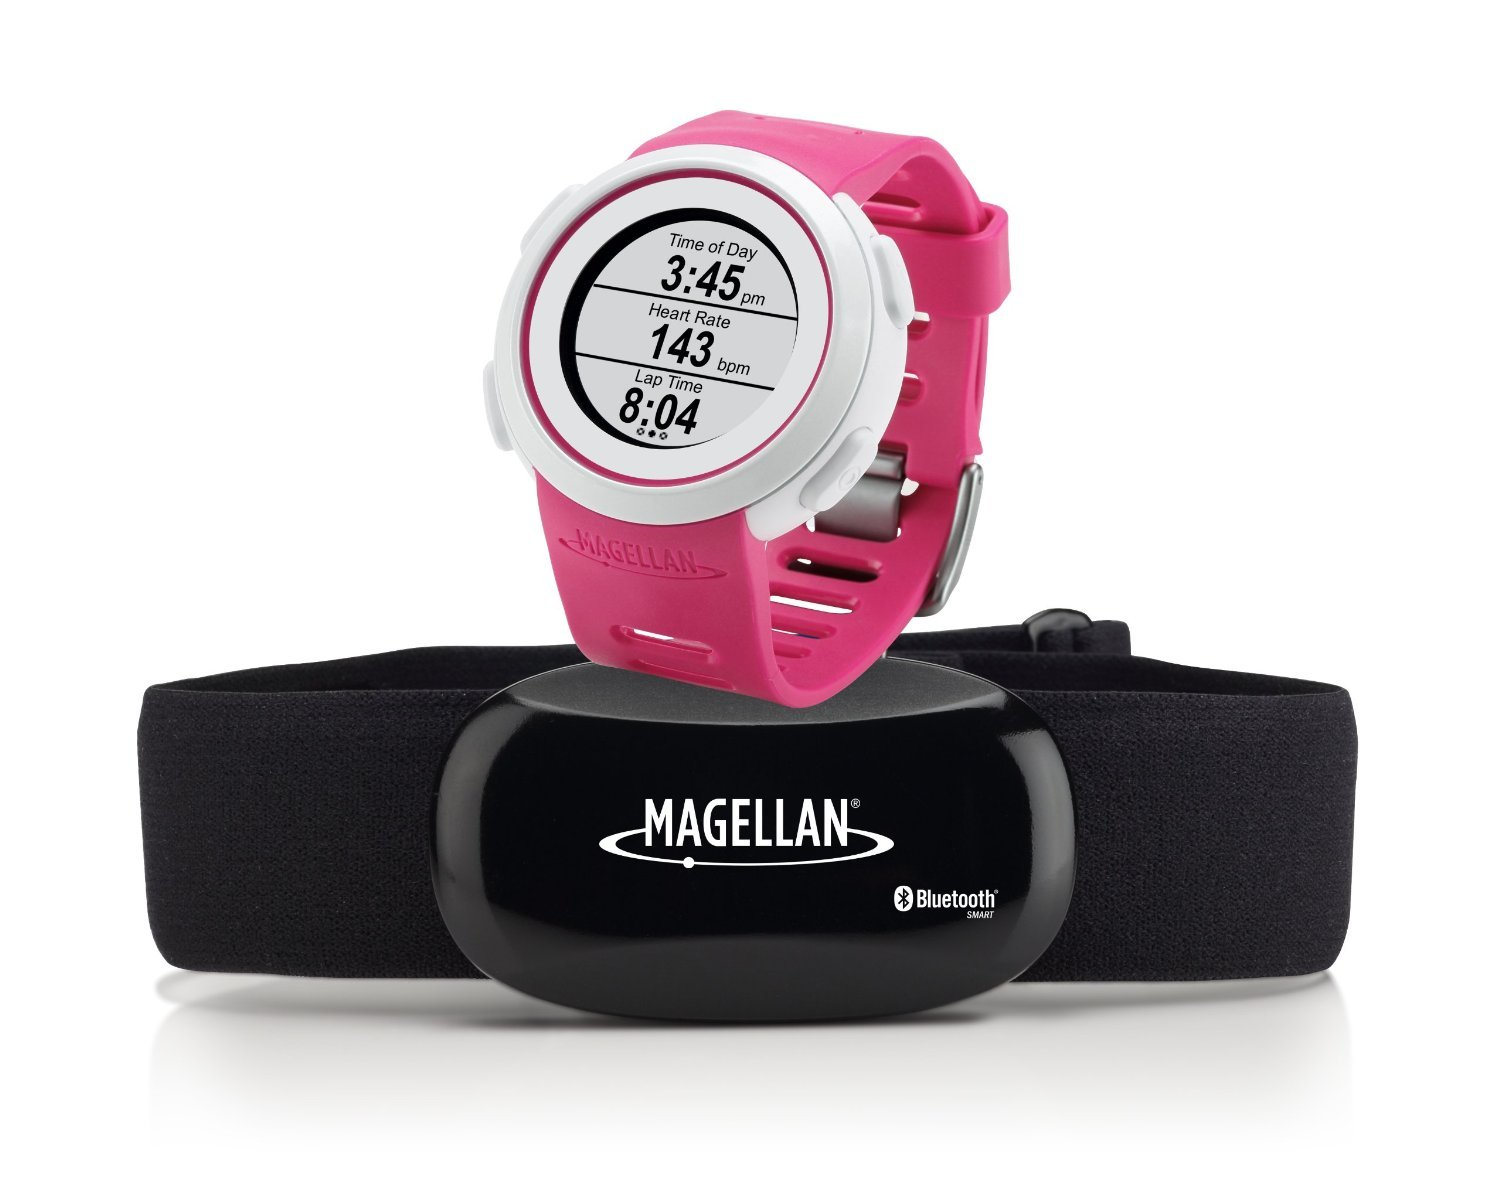 Magellan Echo Smart Sports Watch with Heart Rate Monitor-Bluetooth Smart (Pink)